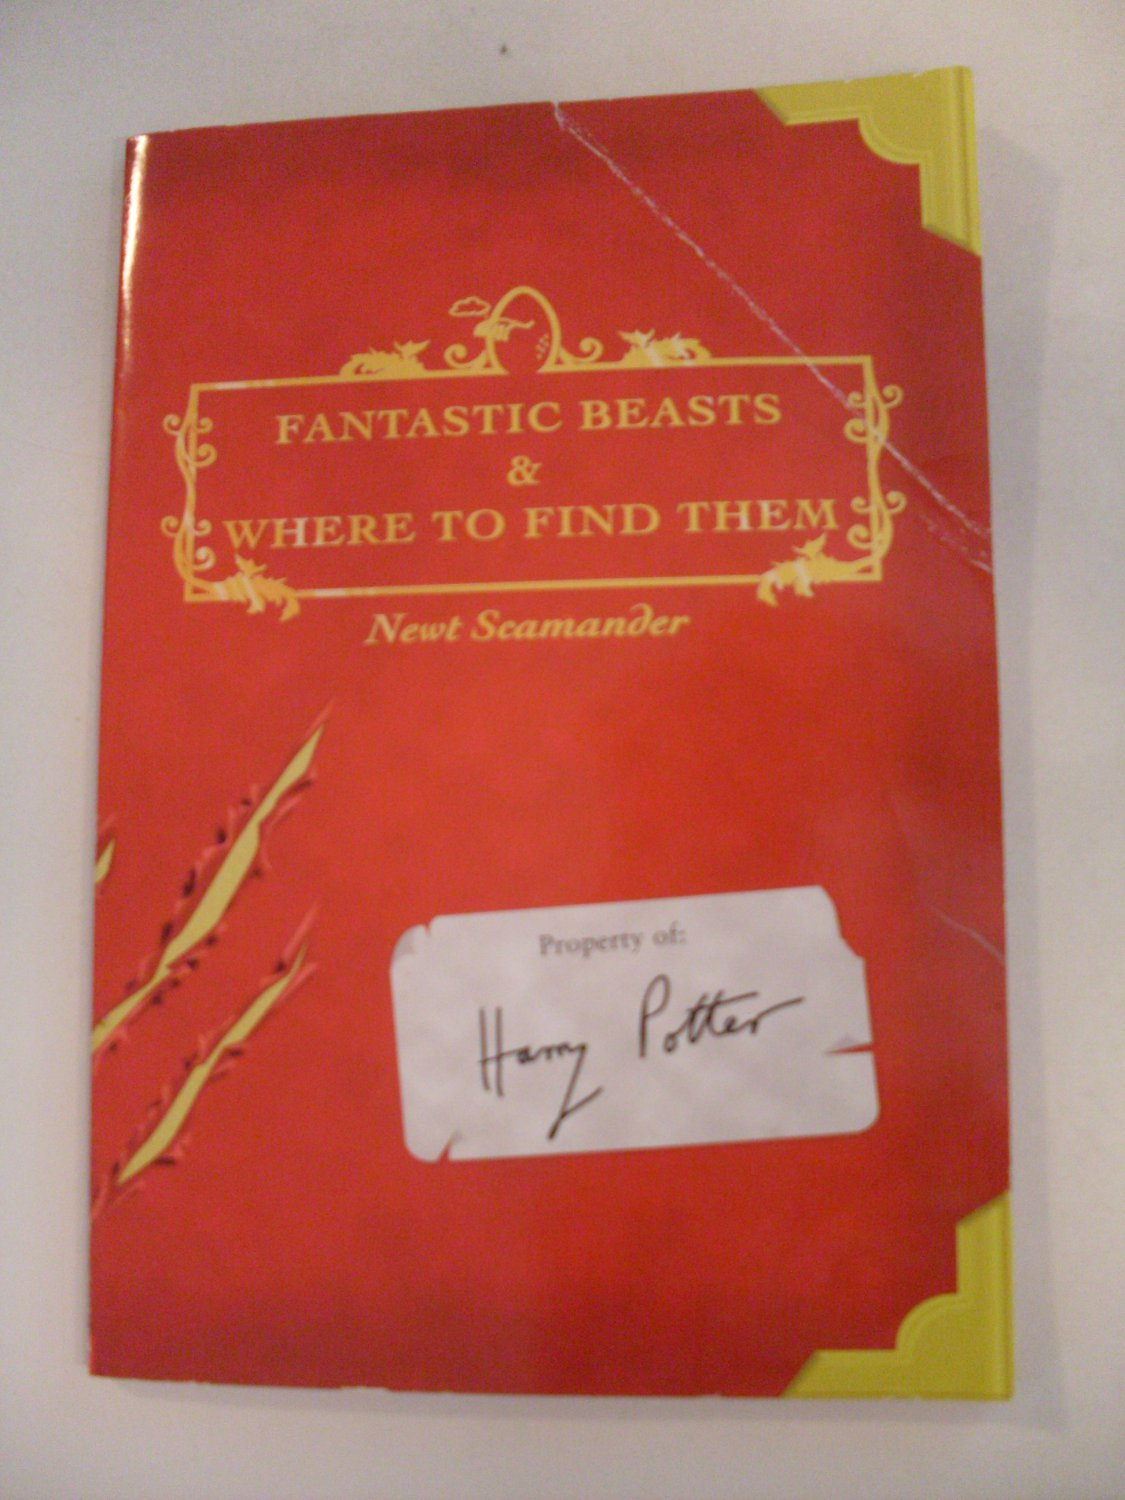 Harry Potter Book Fantastic Beasts and Where to Find Them